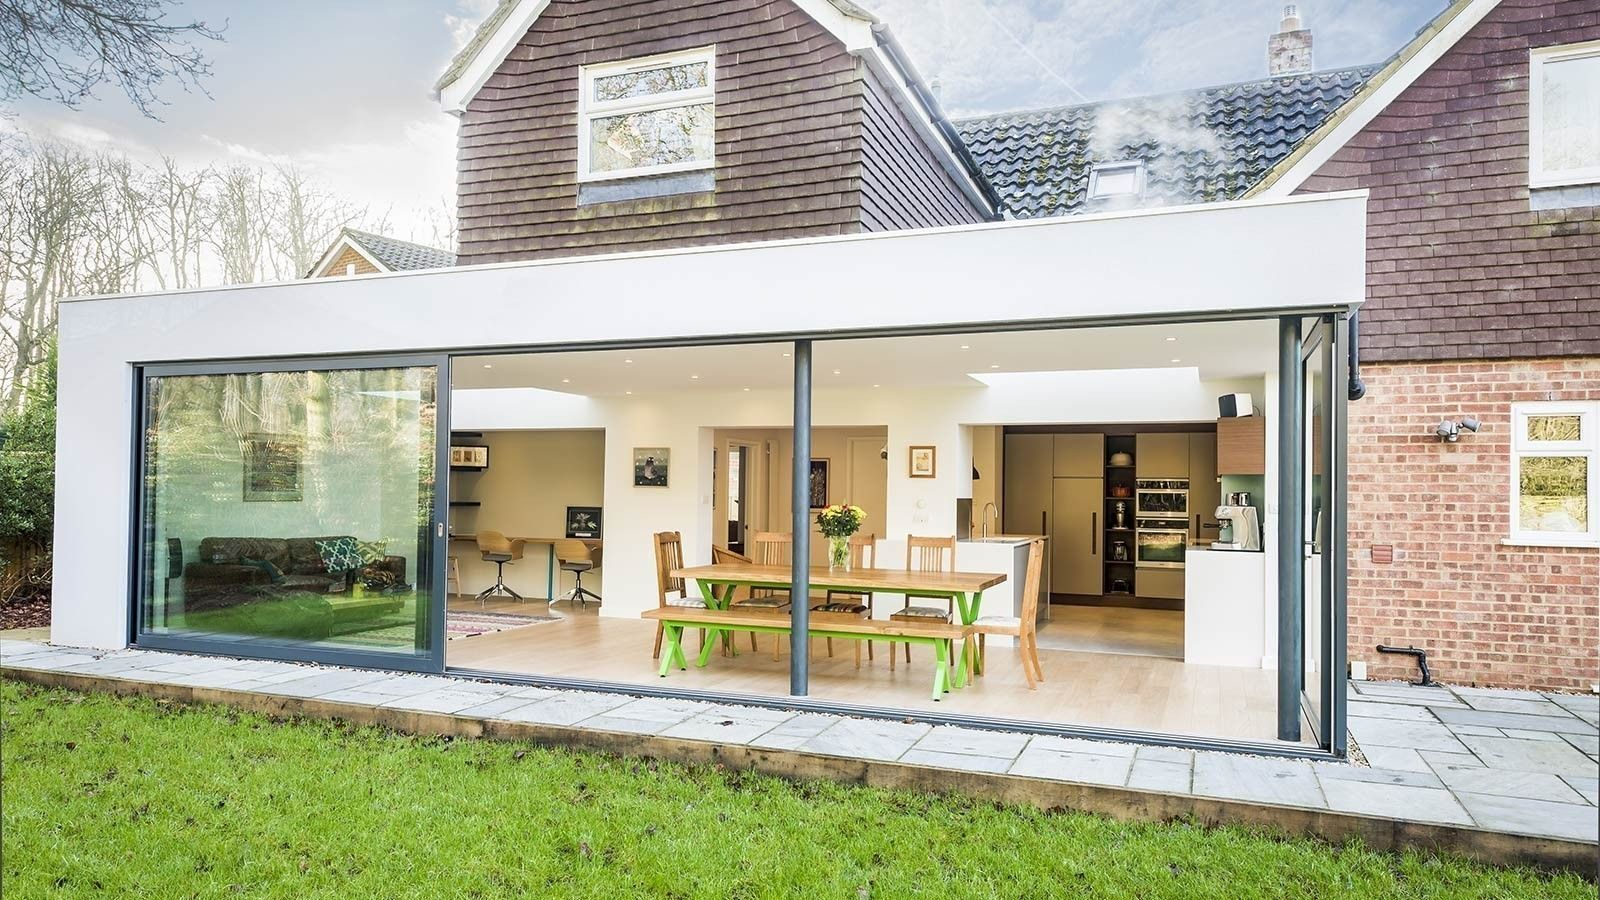 Five most common home extension mistakes and how to avoid them